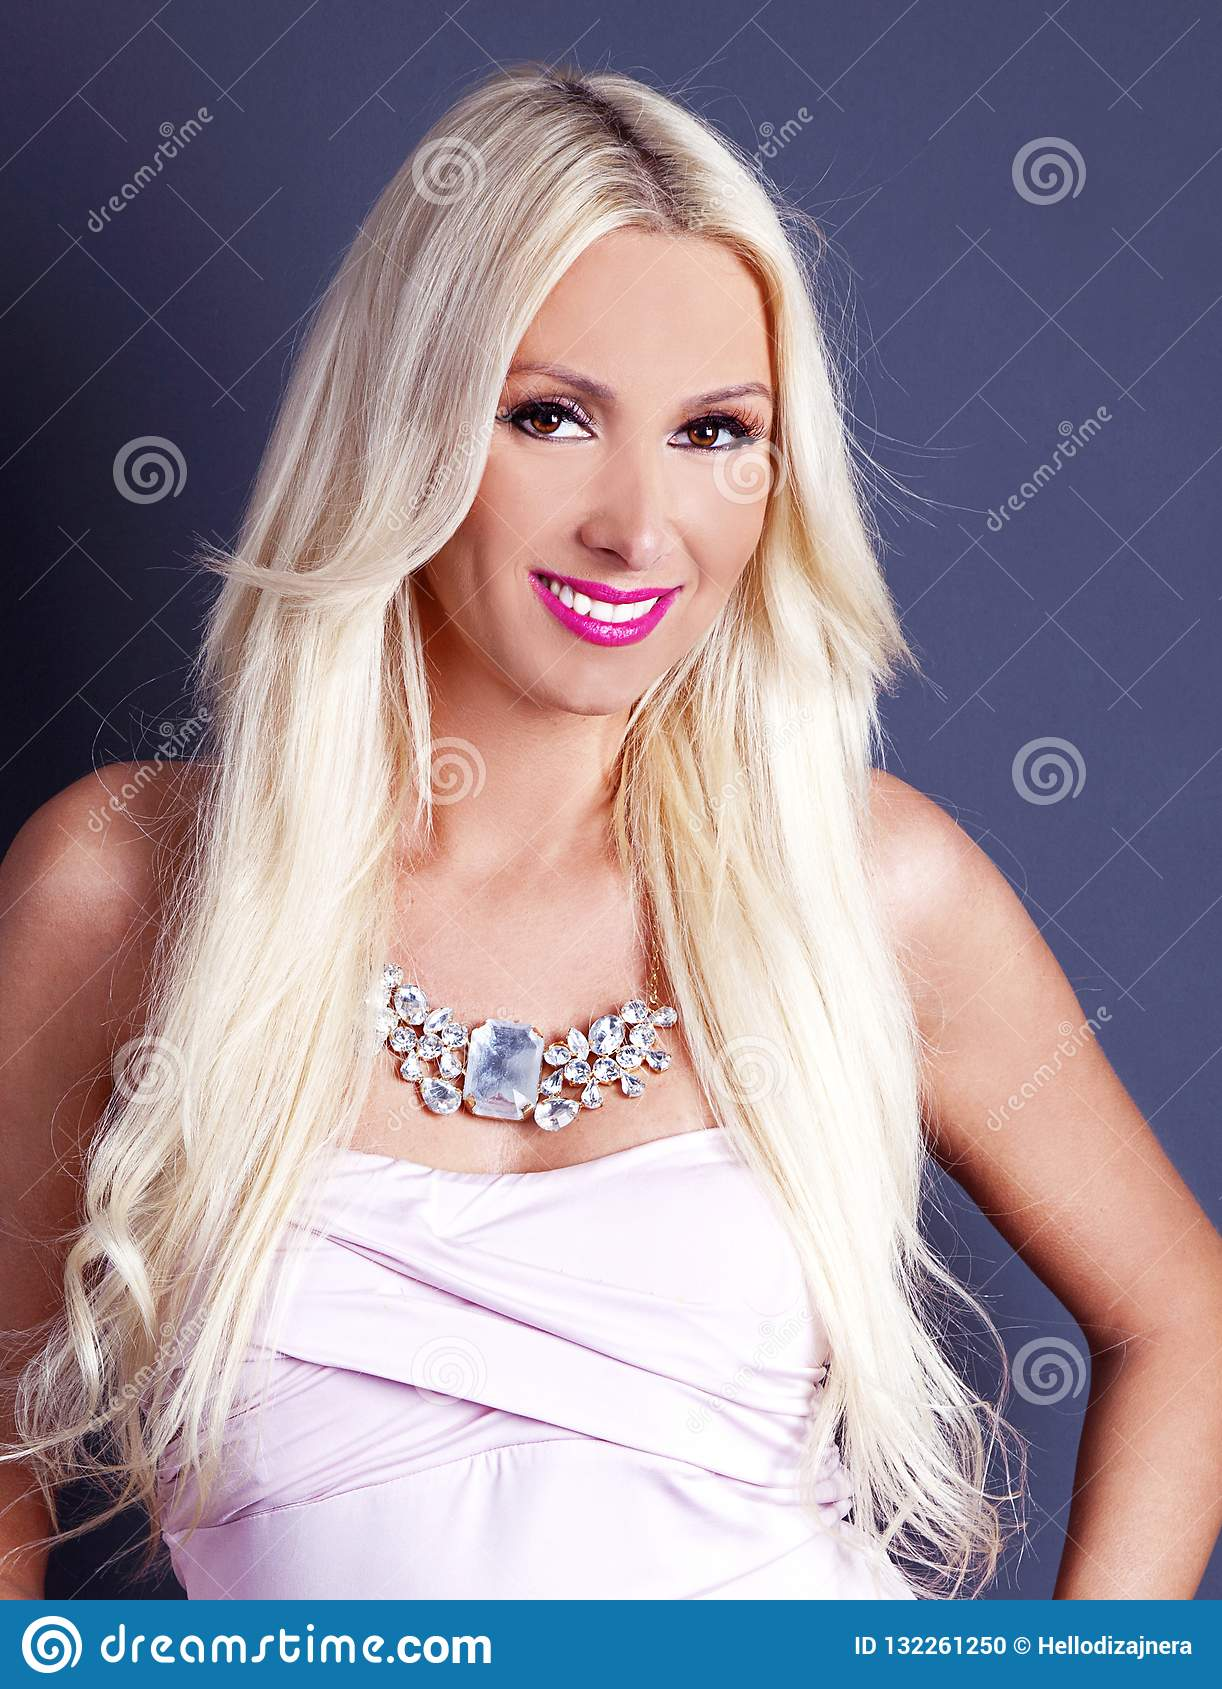 The Beautiful, Happy, Young Blond smiling woman. The Fashion and Beauty shot.